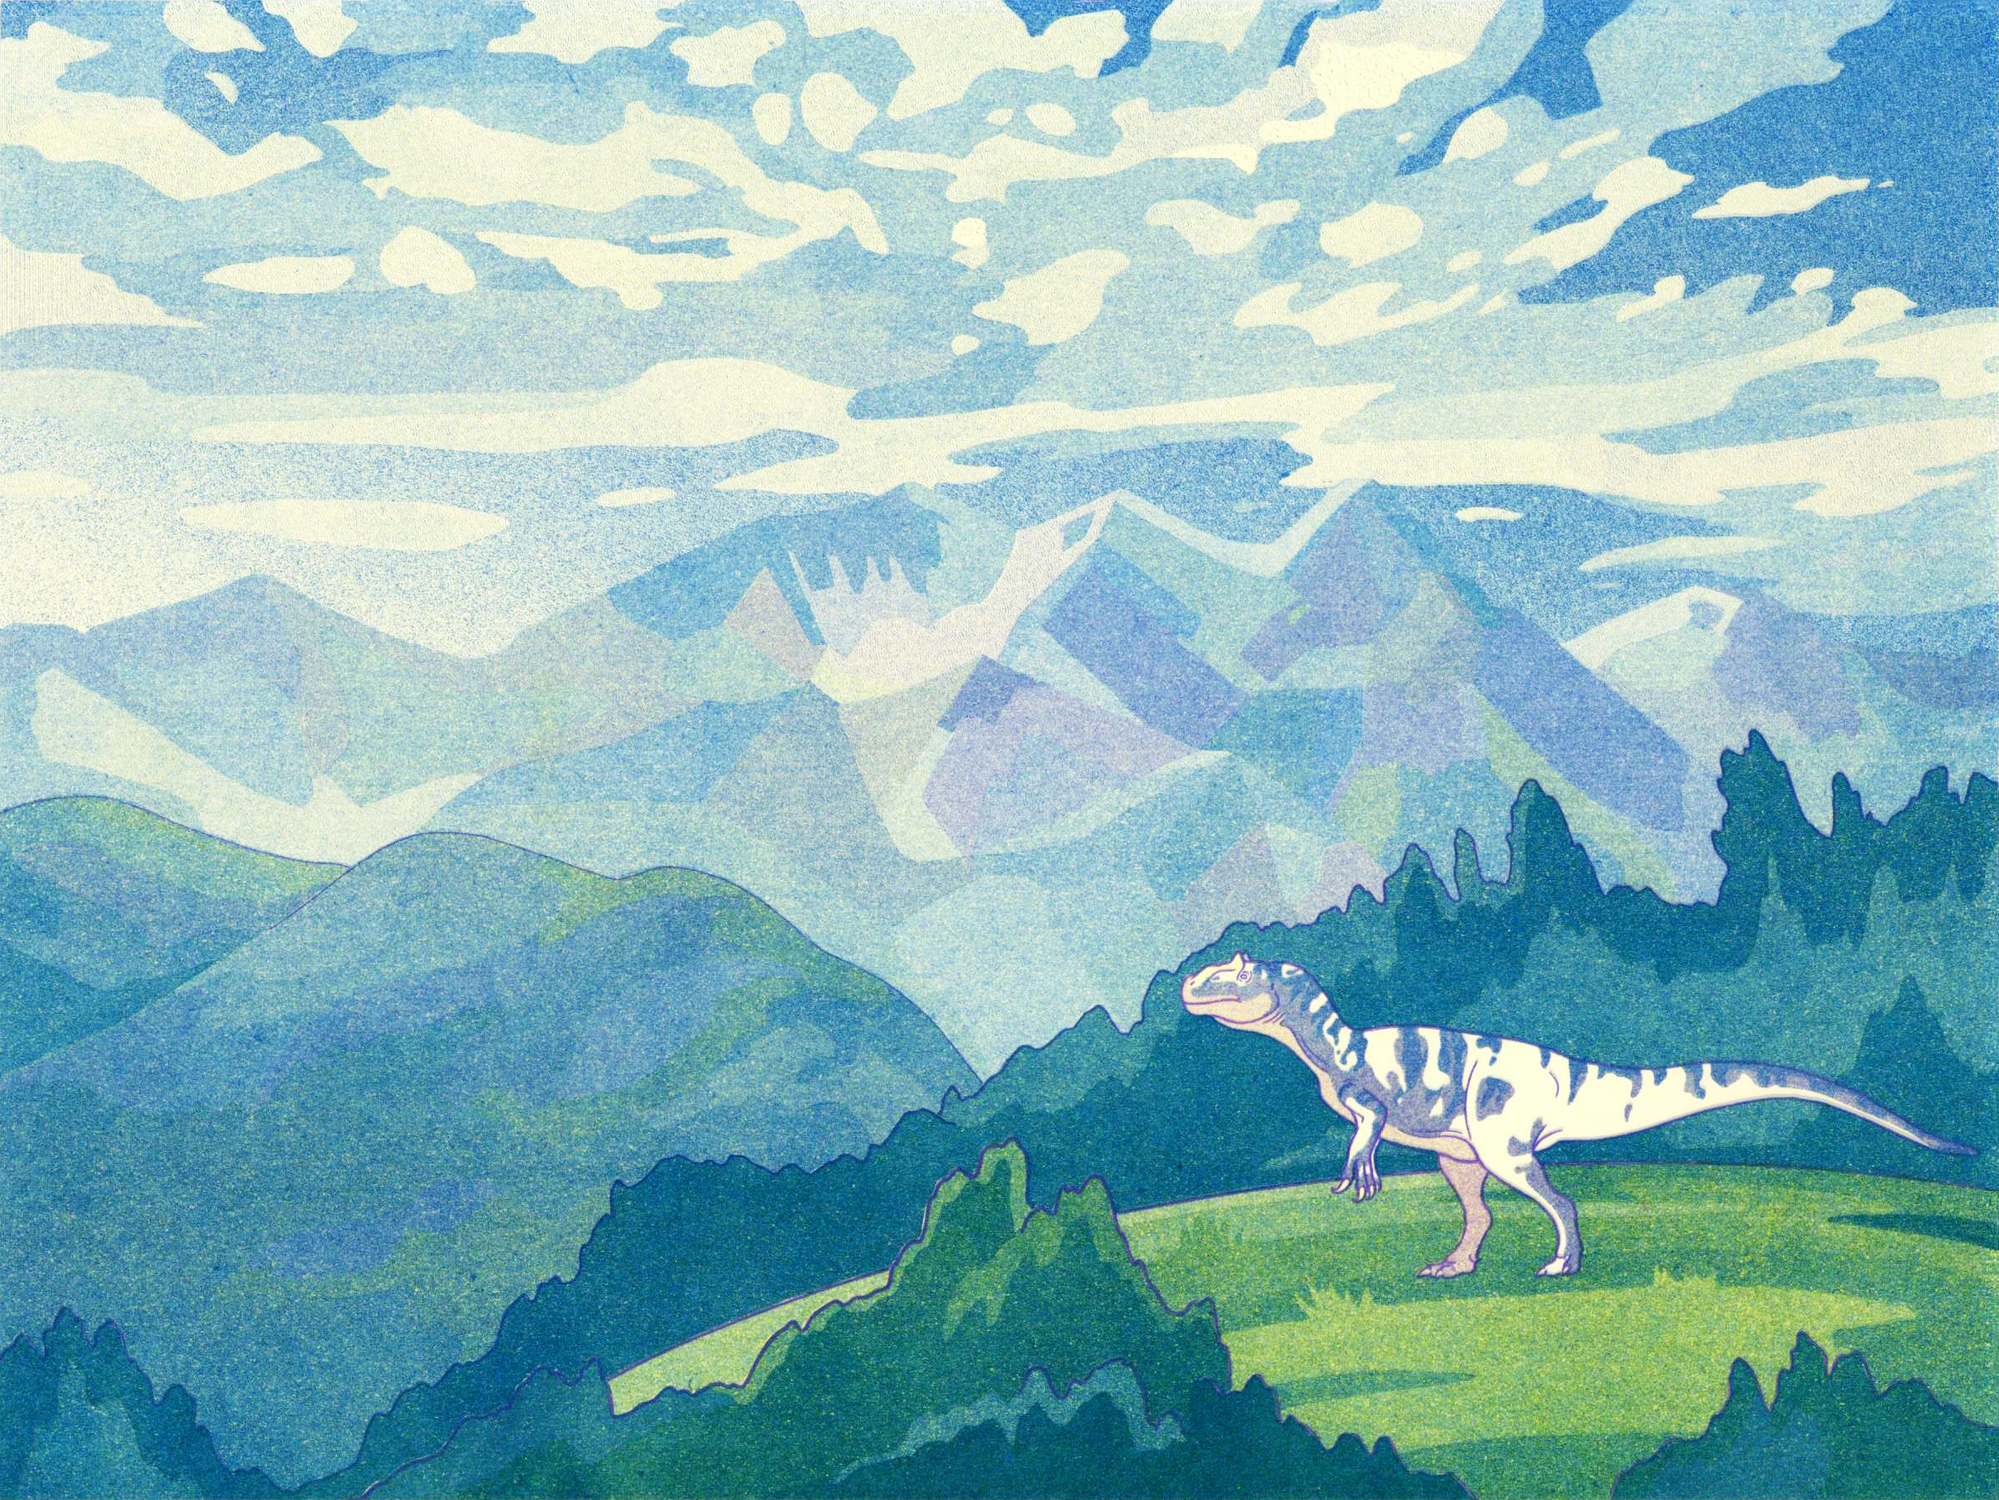 Allosaurus Artwork by Greer Stothers